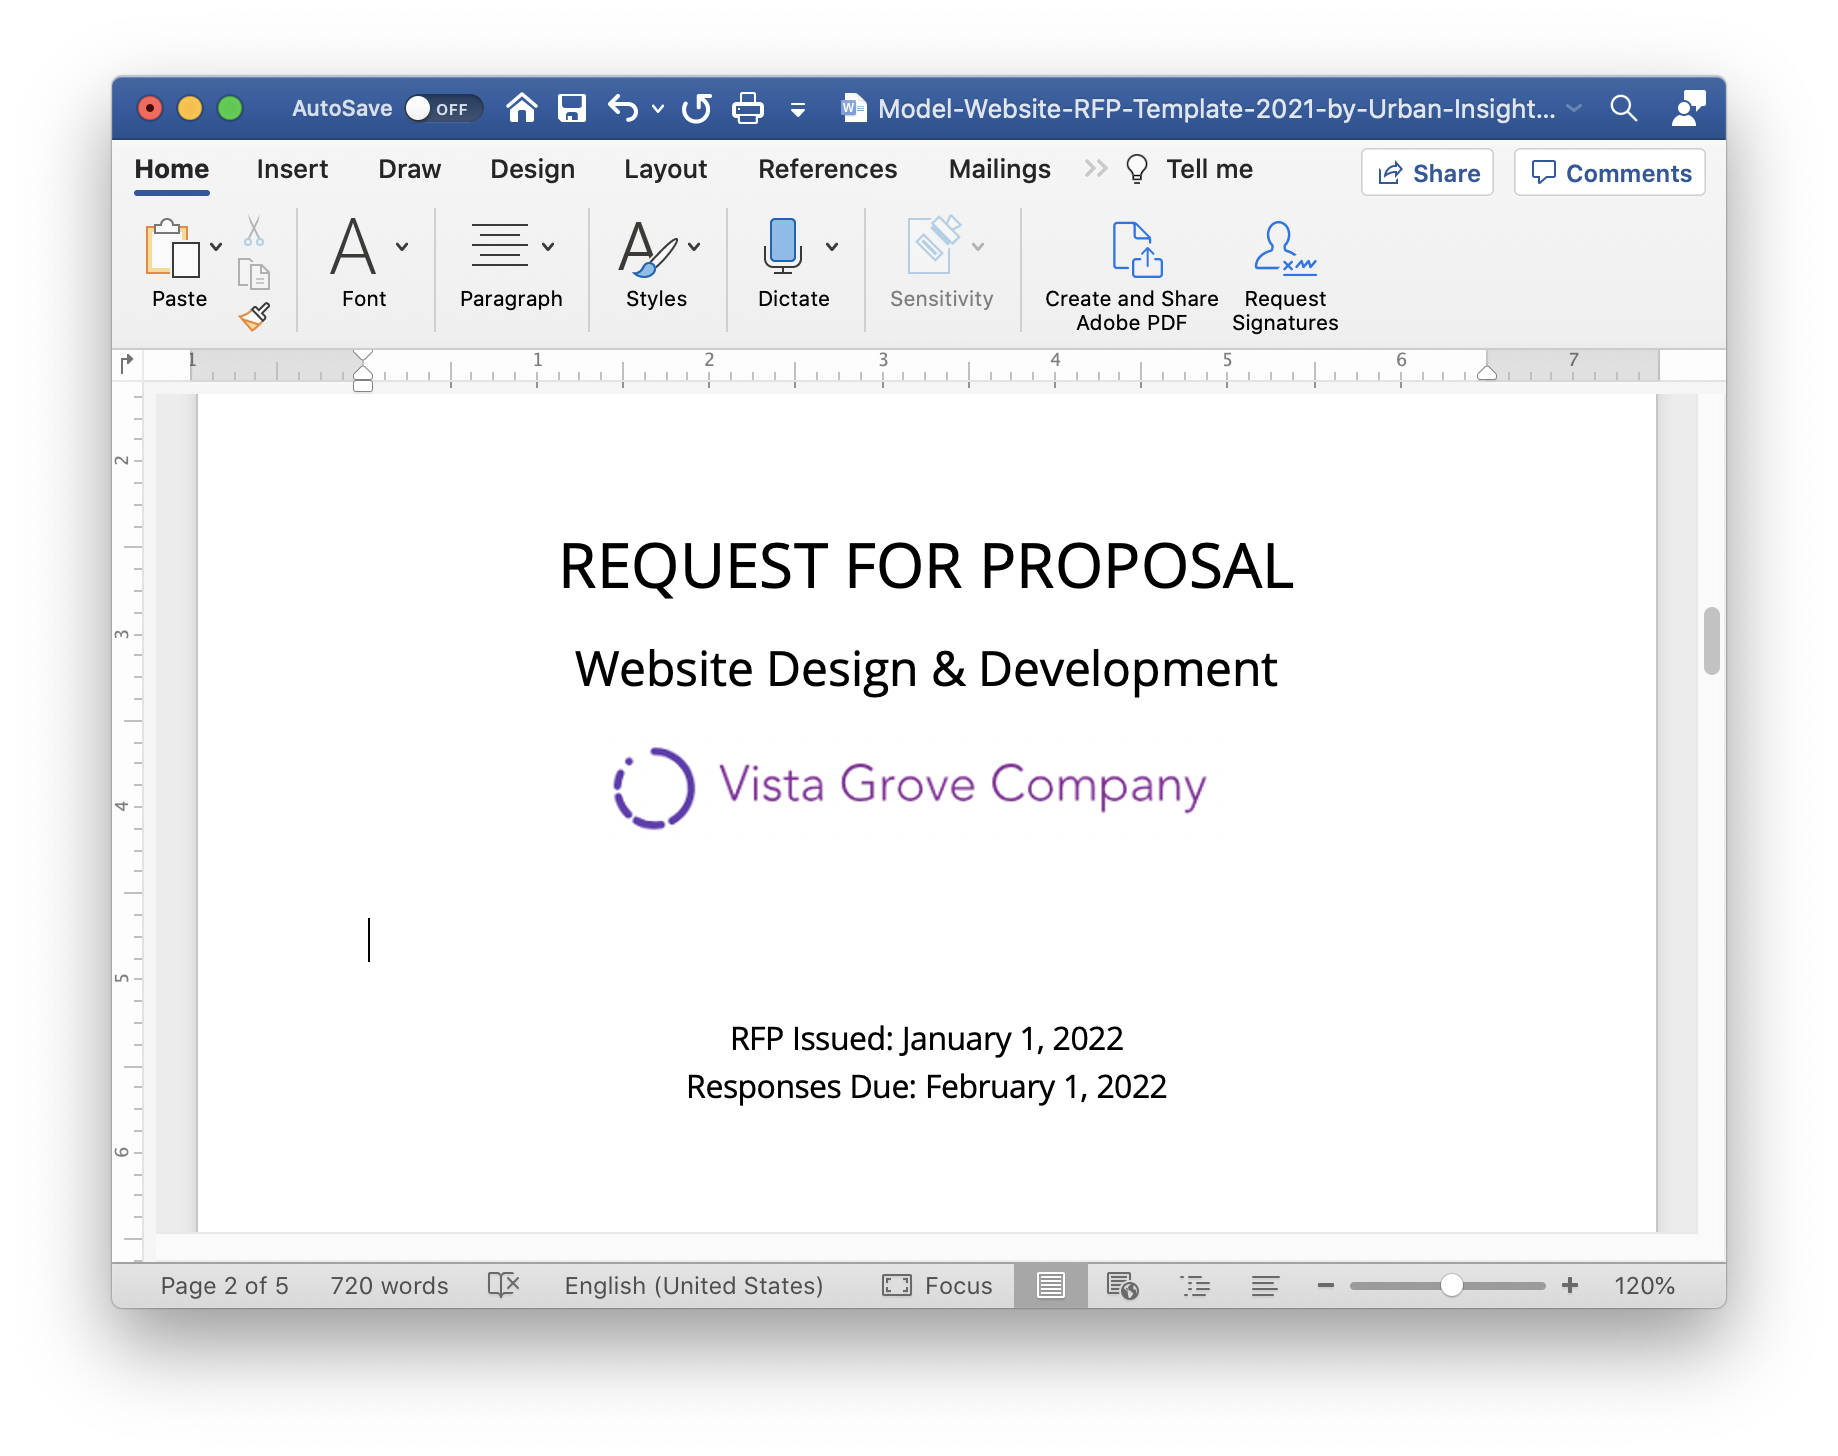 Screenshot of the model website redesign RFP (request for proposal) template